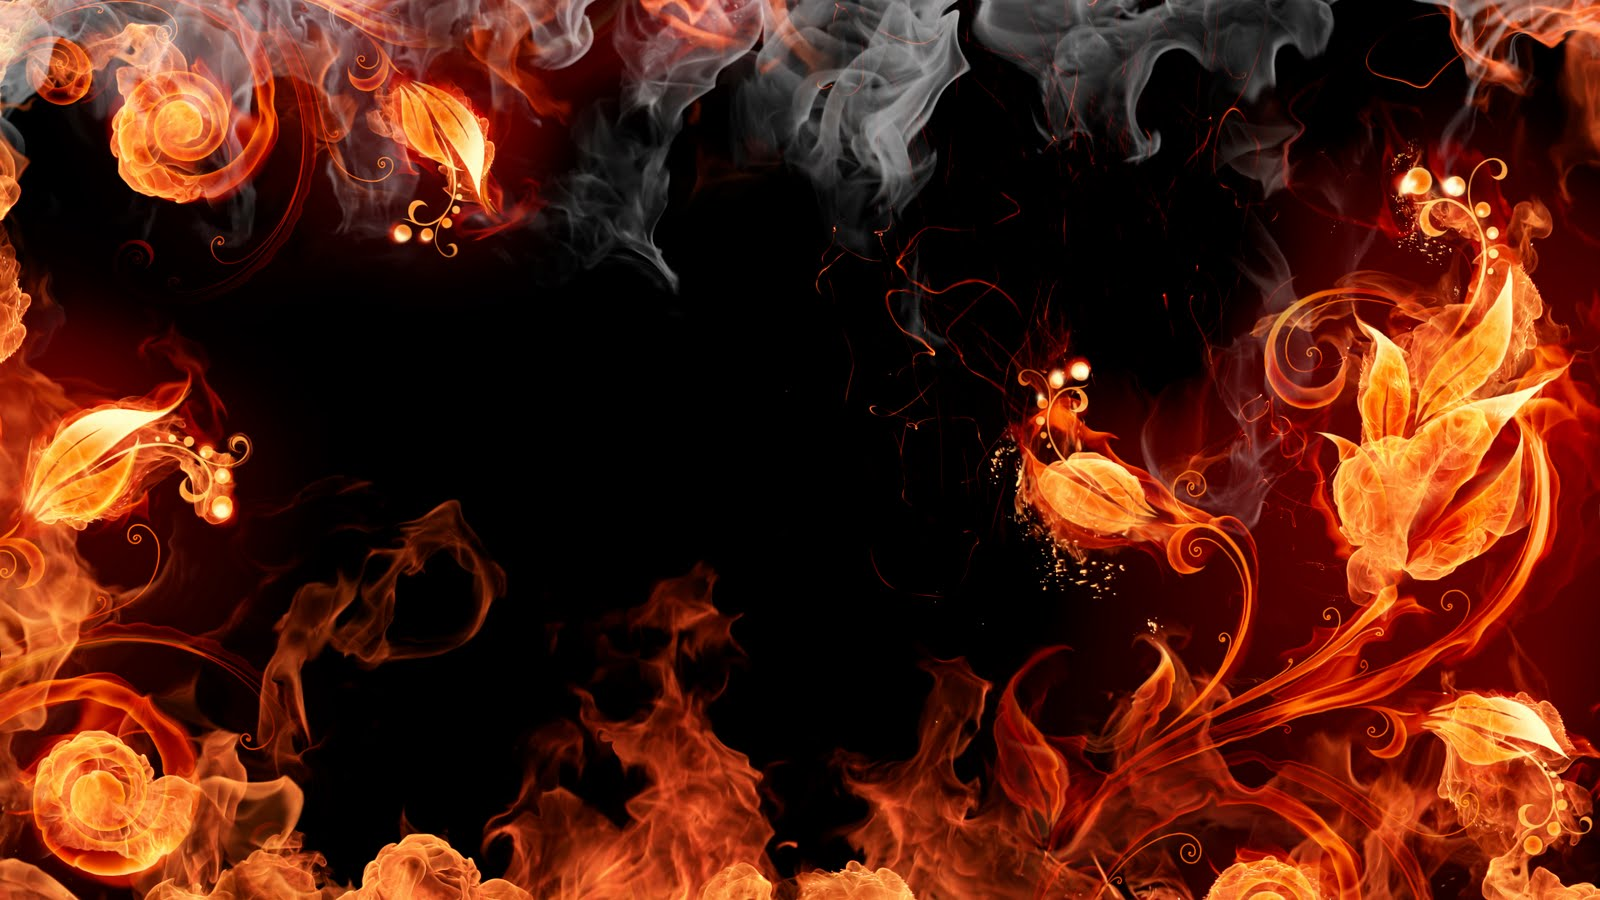 hd wallpapers desktop fire - photo #19